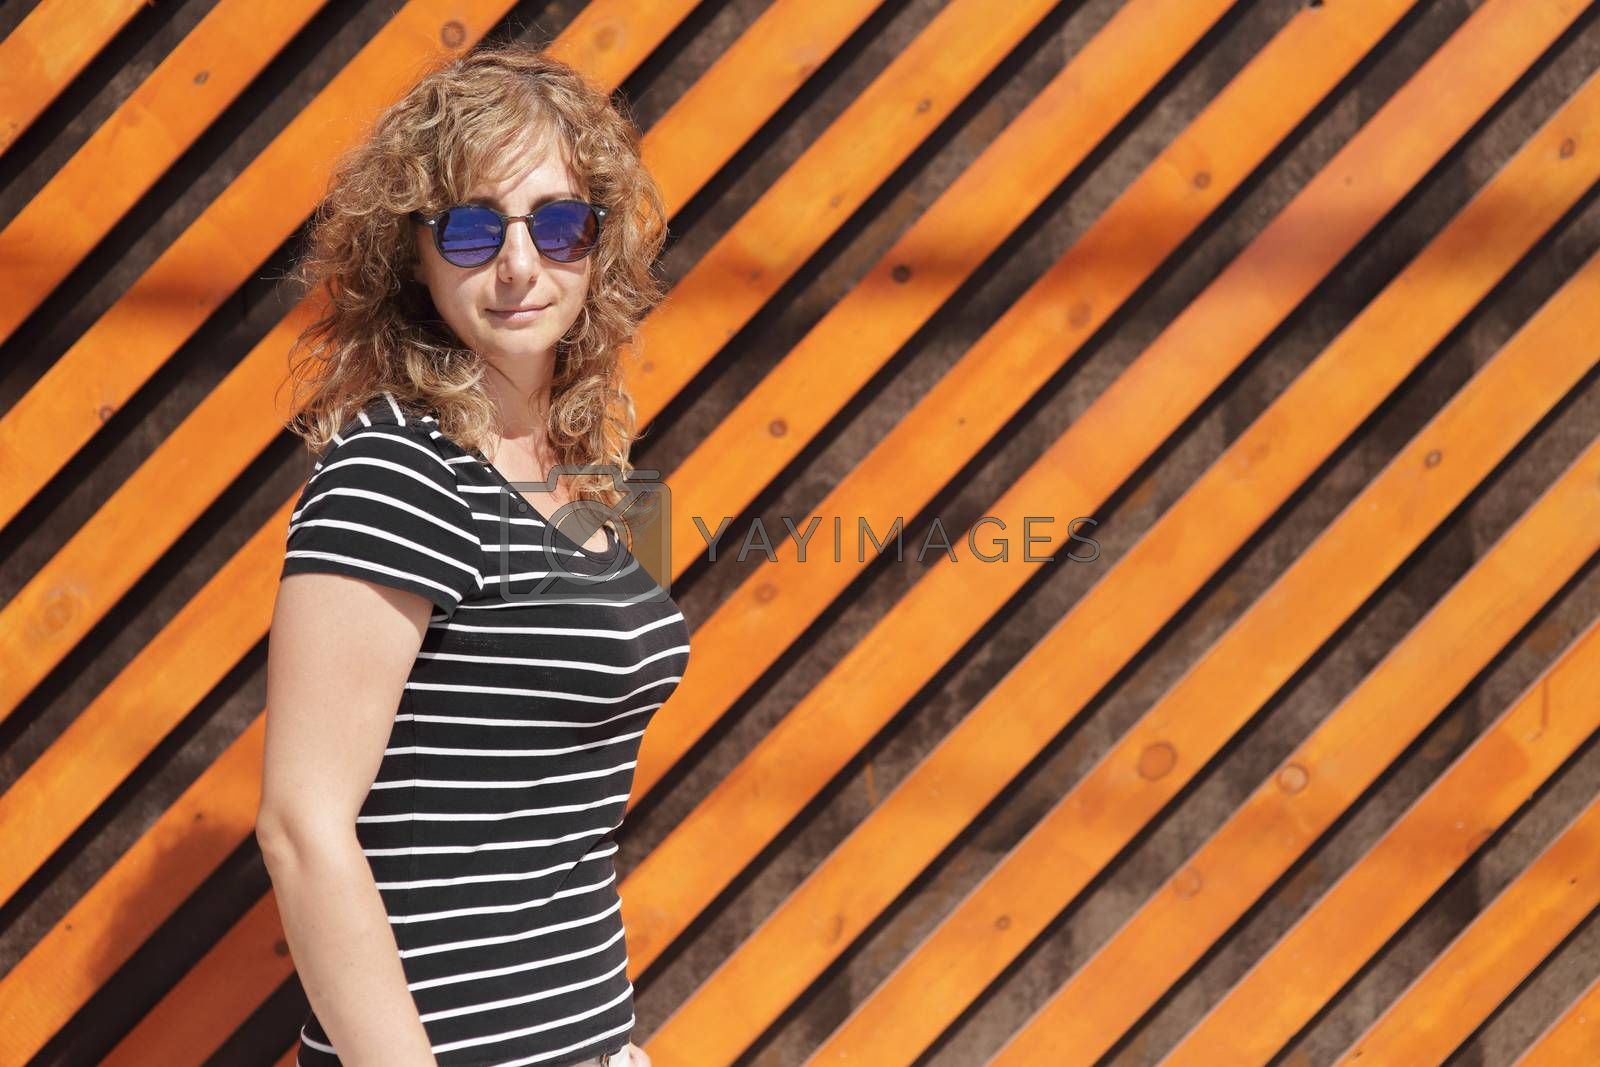 Royalty free image of Woman portrait in sunglasses, free space for text by selinsmo